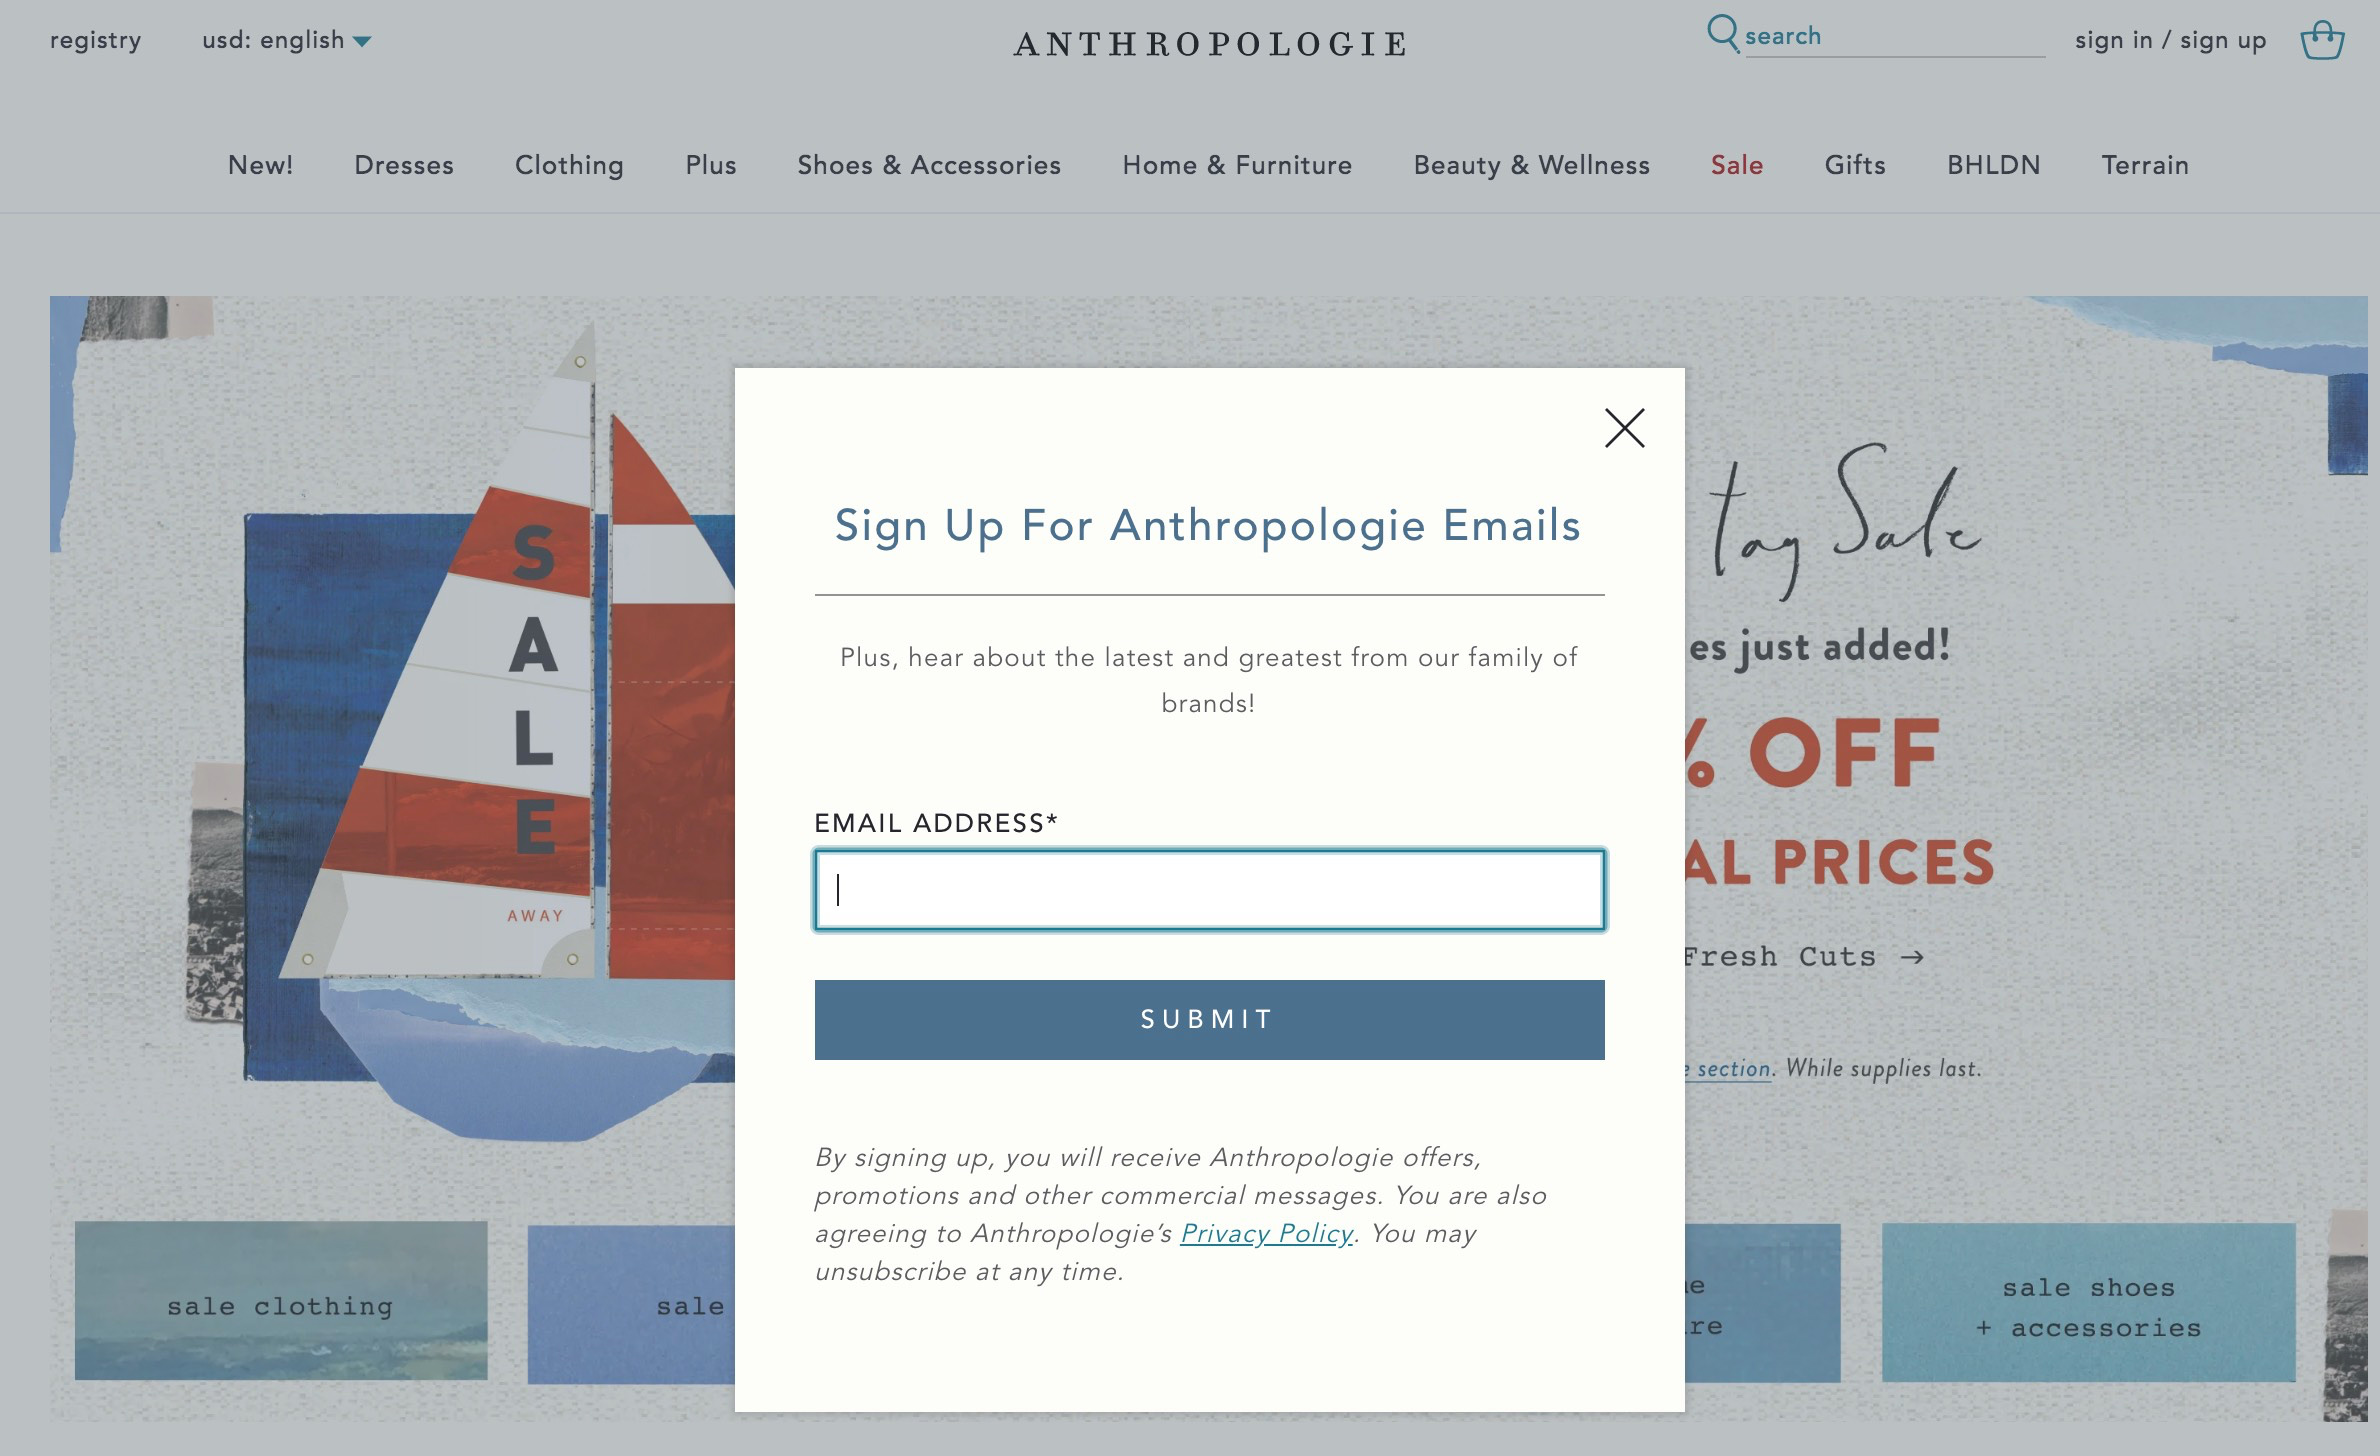 Anthropologie's email signup form makes it clear to the subscriber what to expect.